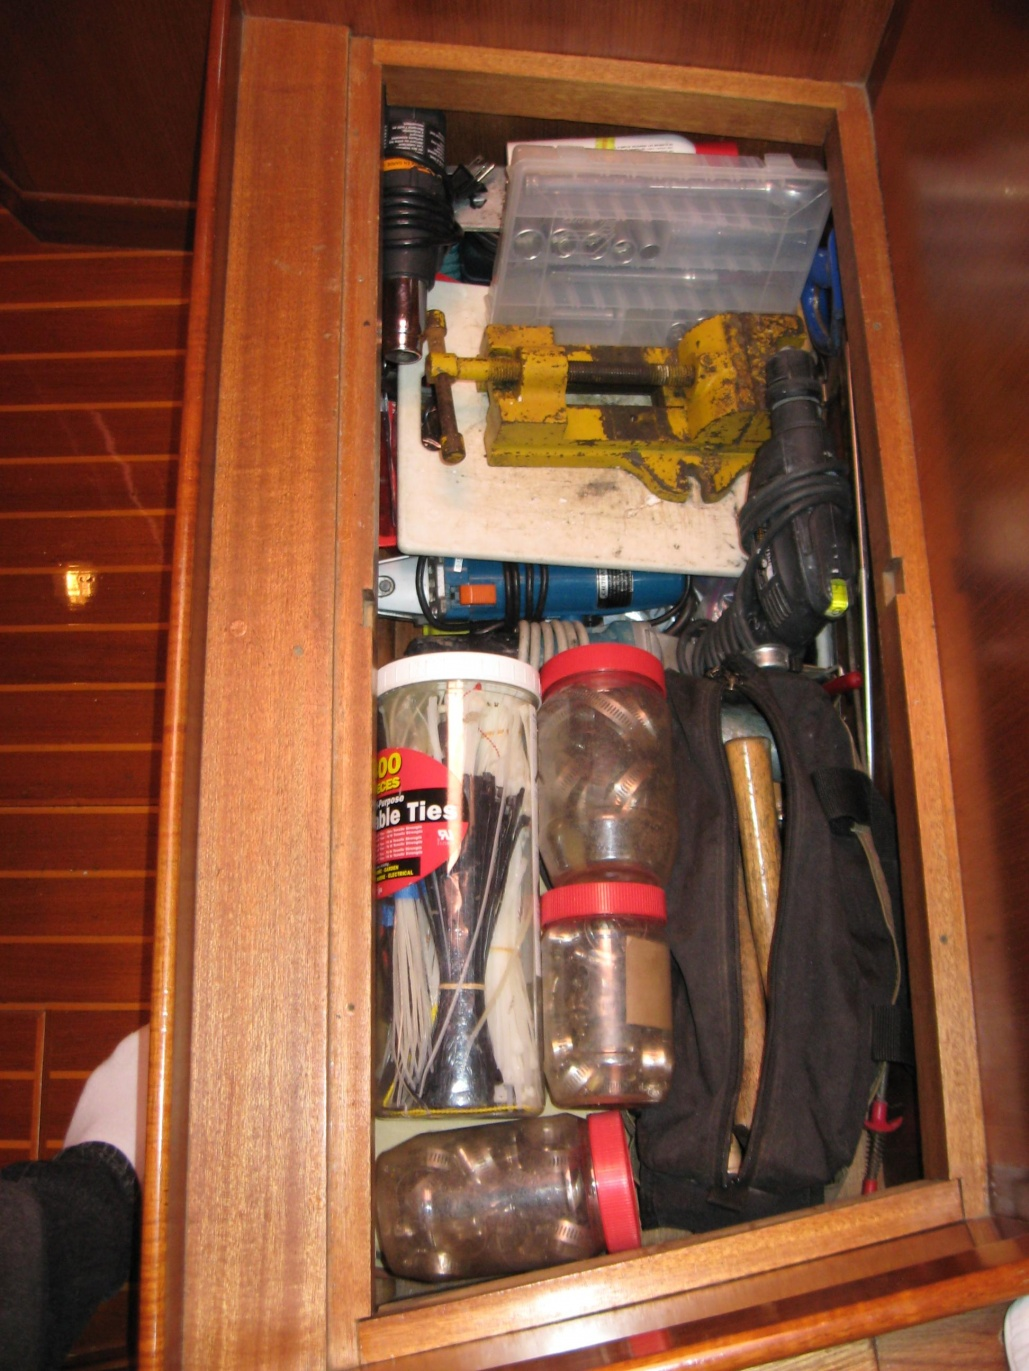 Click image for larger version  Name:Tool Storage.jpg Views:247 Size:426.3 KB ID:19352